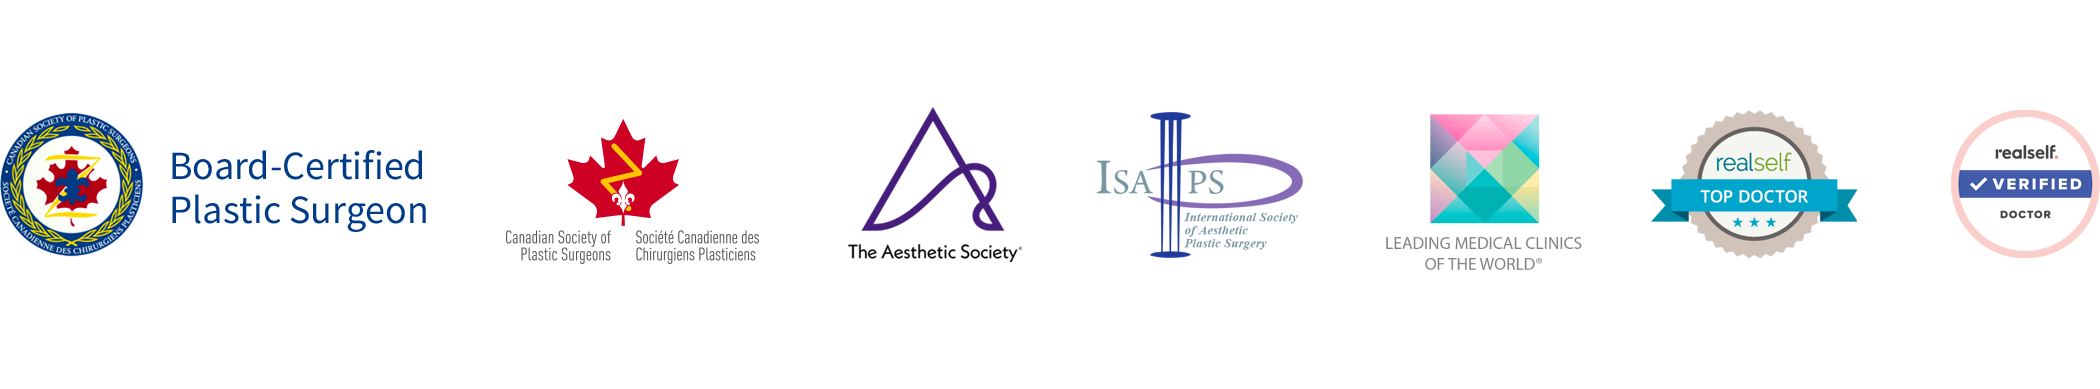 Board-Certified Toronto Plastic Surgeon, Member of CSPS,  ASAPS, ISAPS